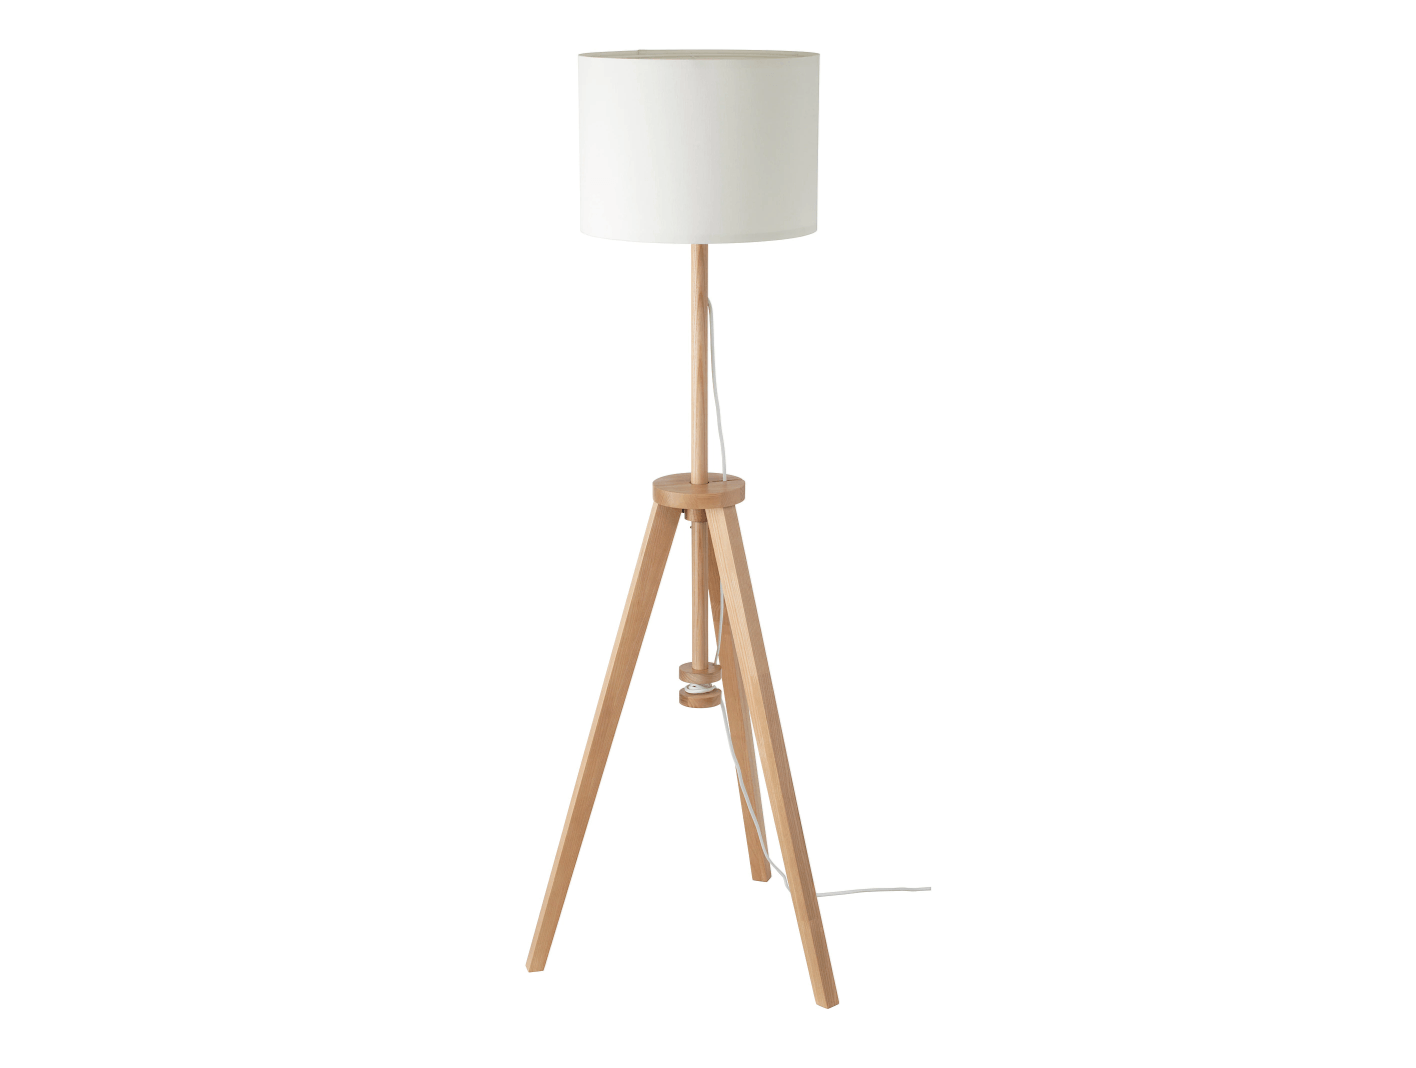 The height-adjustable Lauters Floor Lamp from Ikea has an ash base and a lampshade made of recycled PET bottles; $49.99.